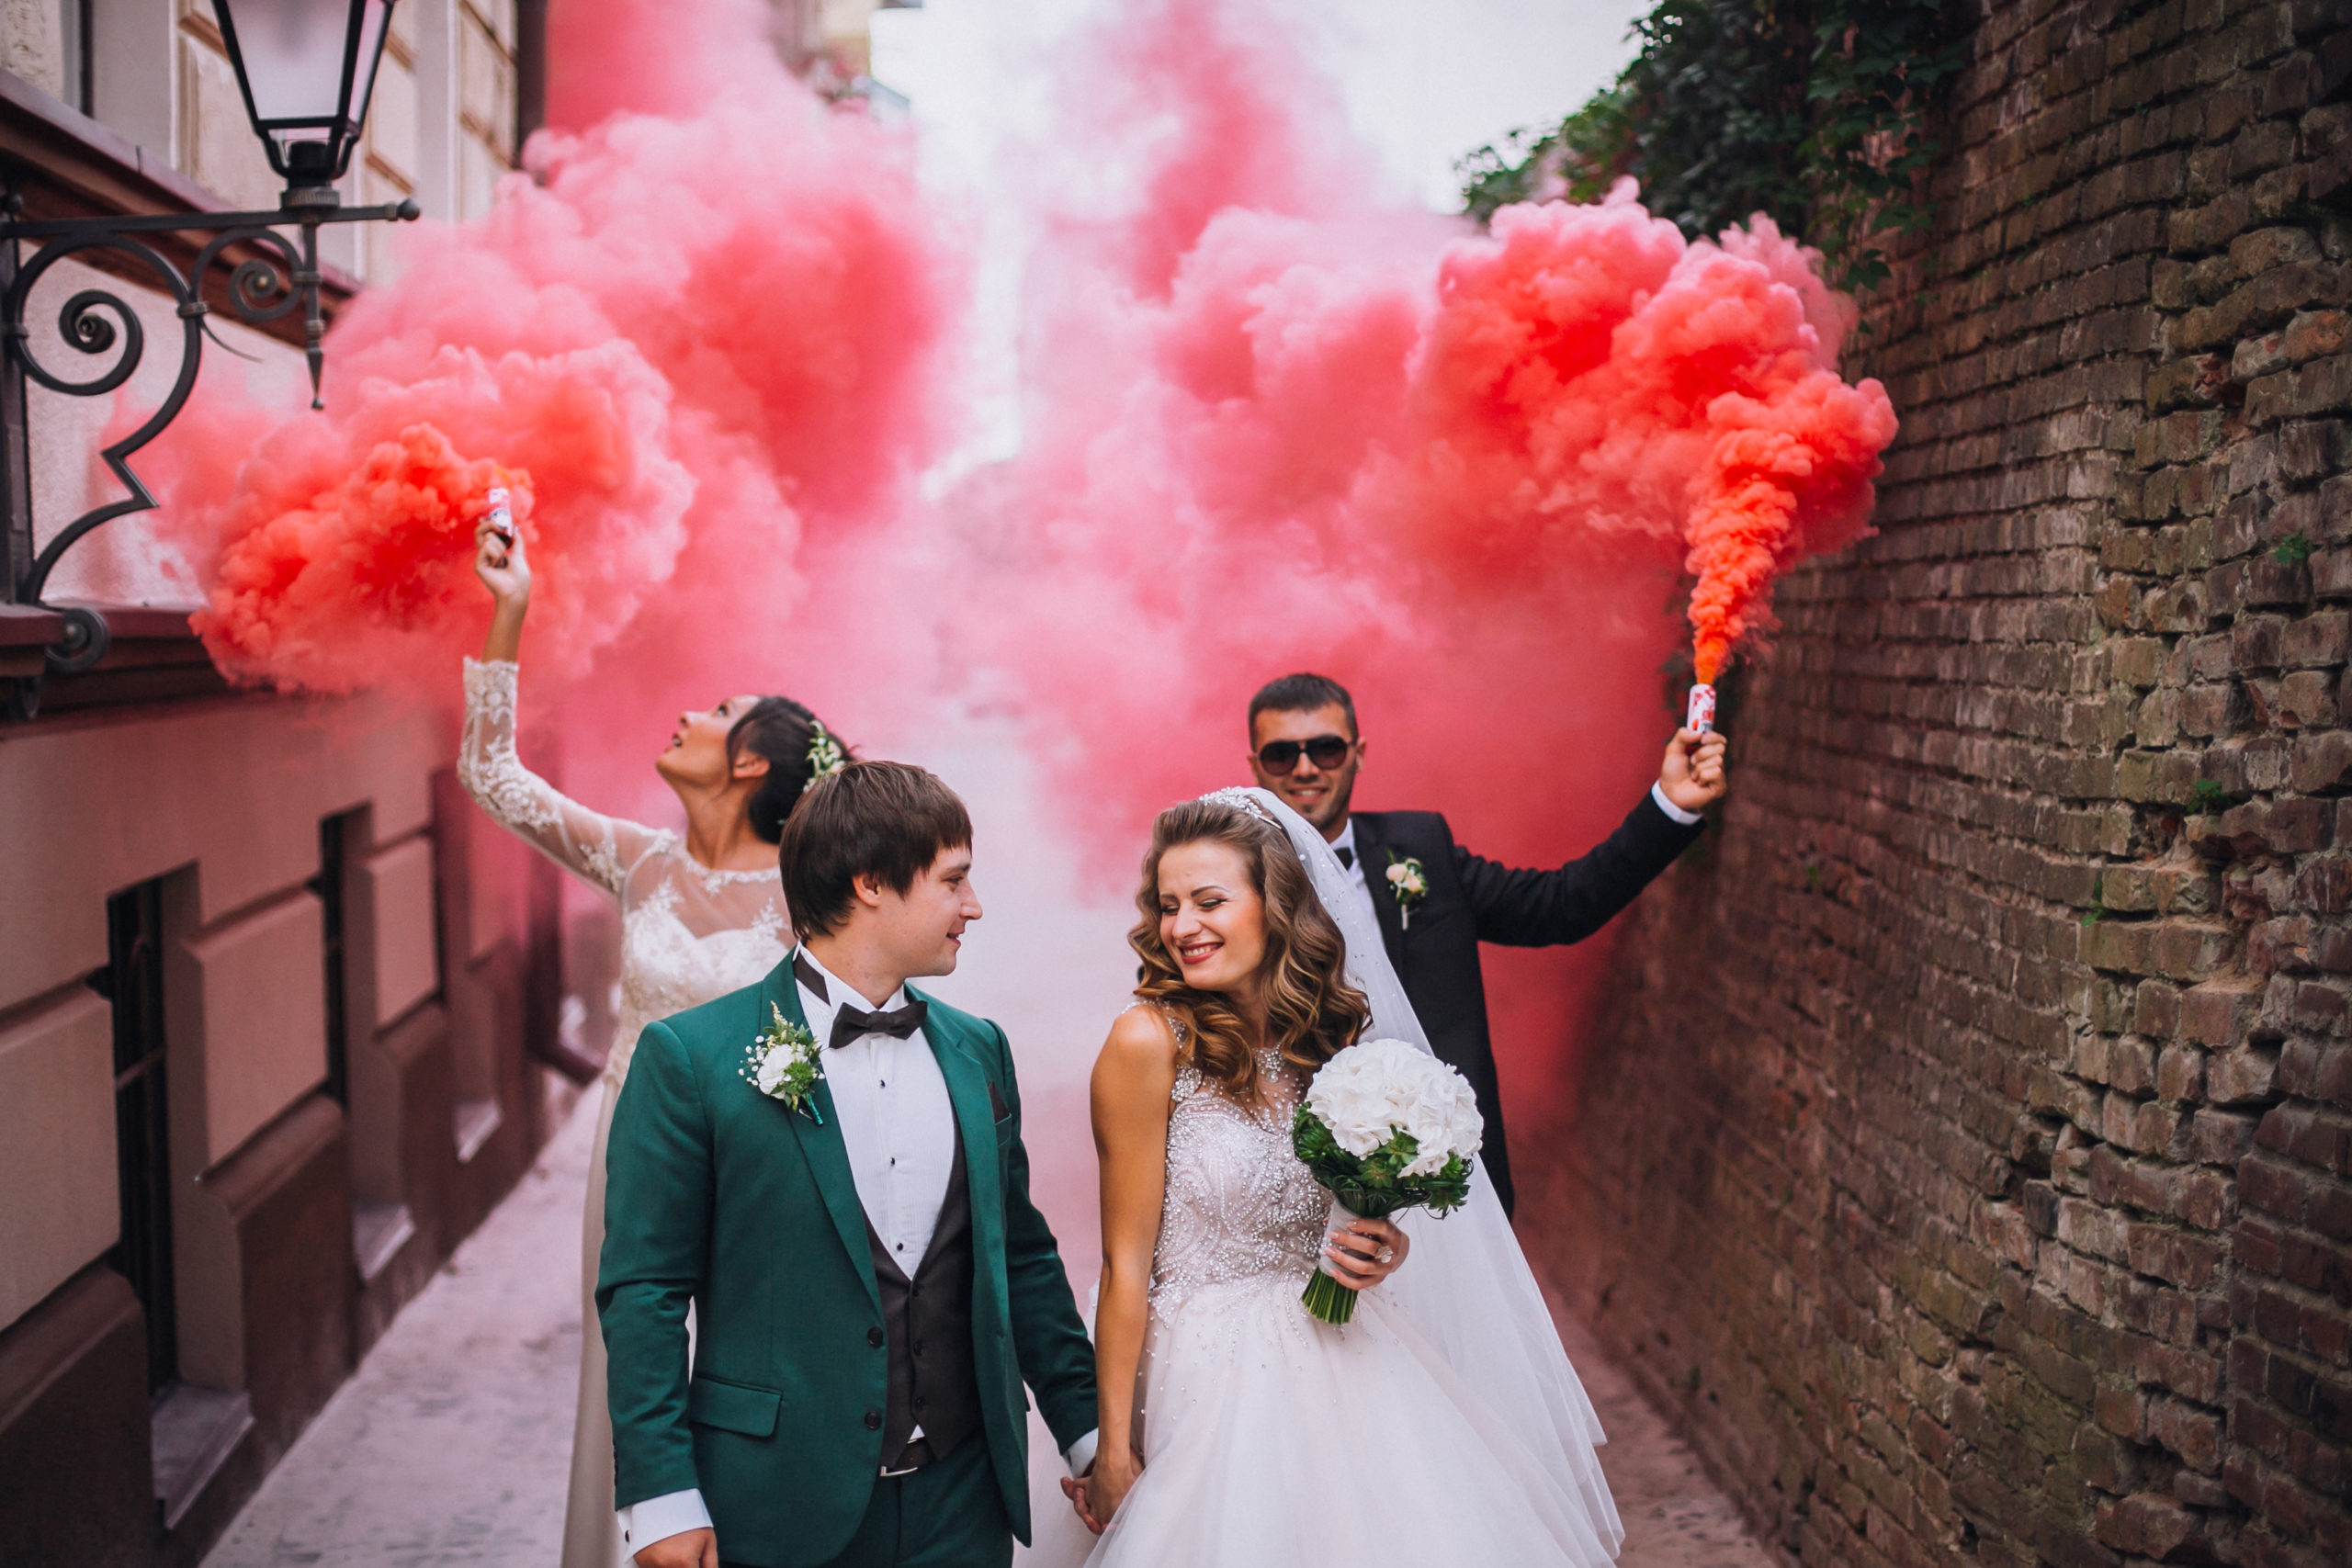 Hochzeitstrends Color Smoke Bombs